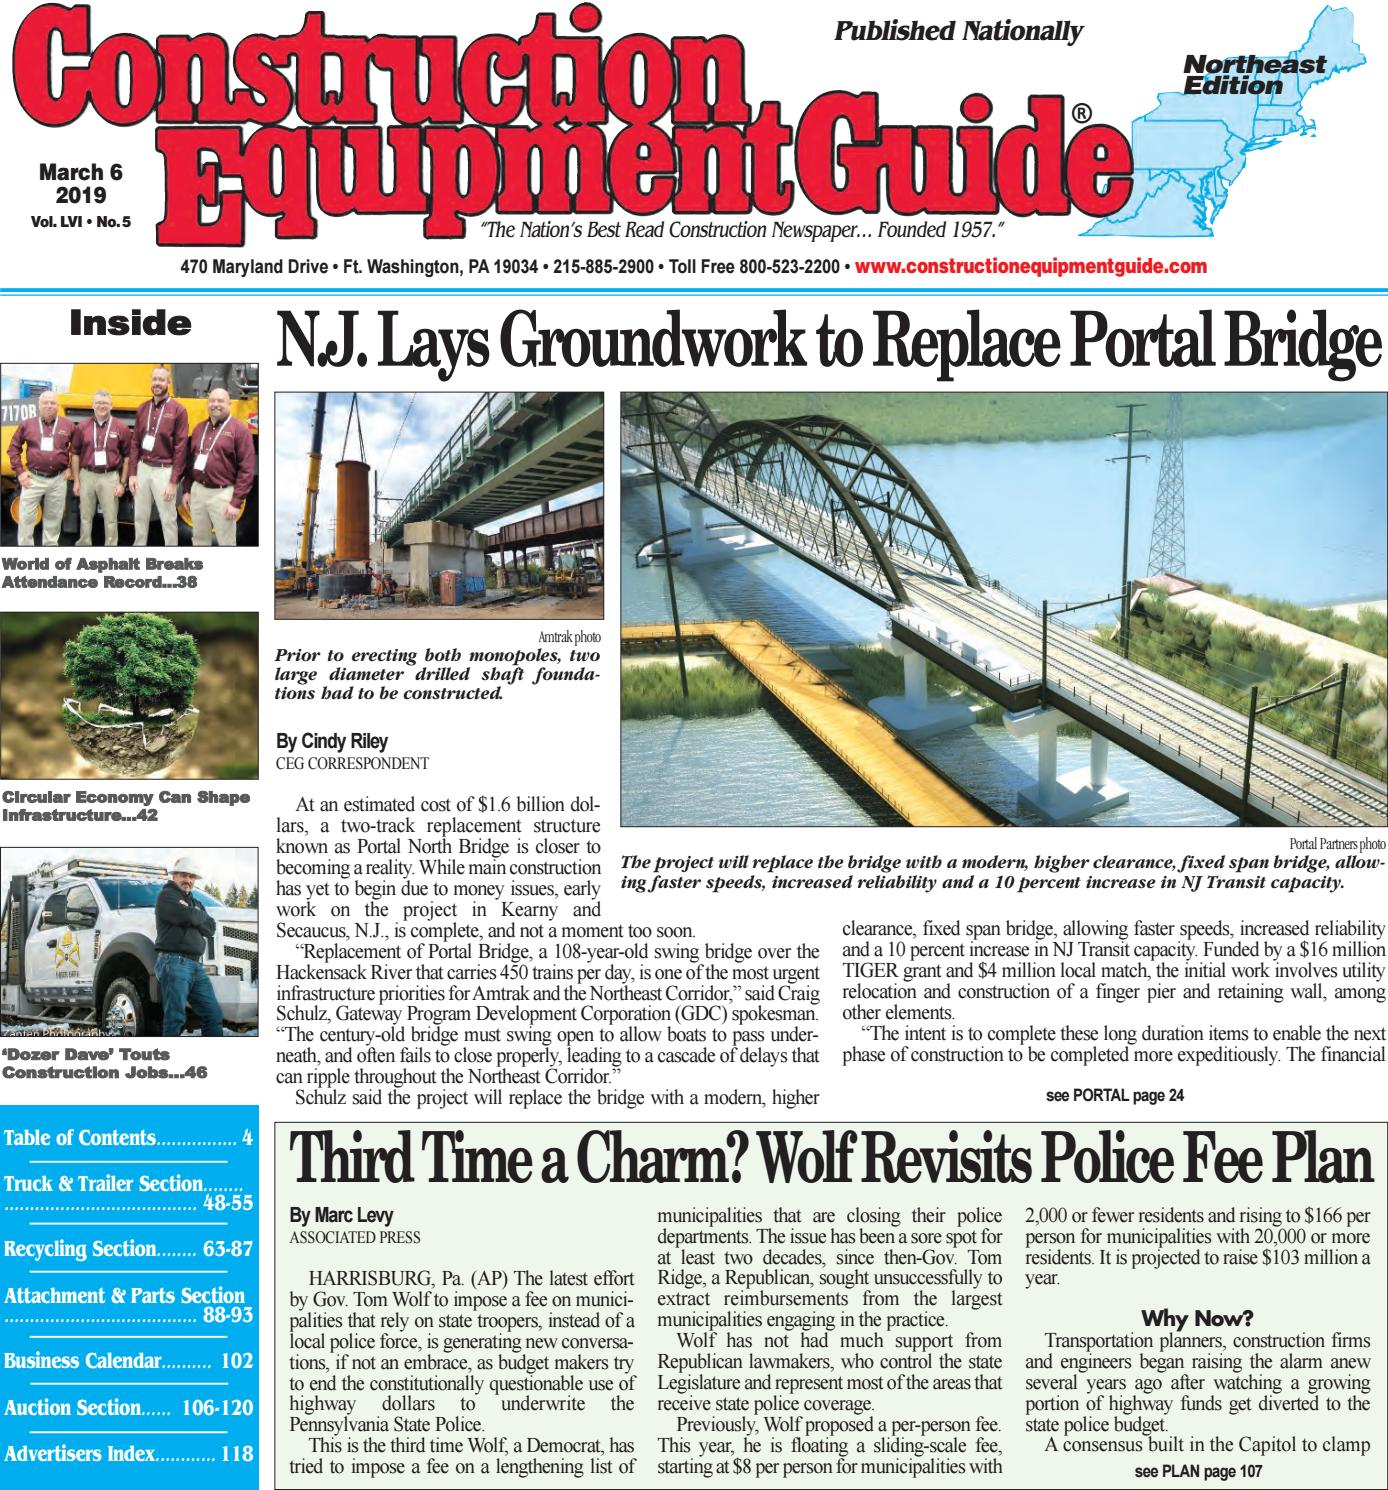 Northeast 5 March 6, 2019 by Construction Equipment Guide